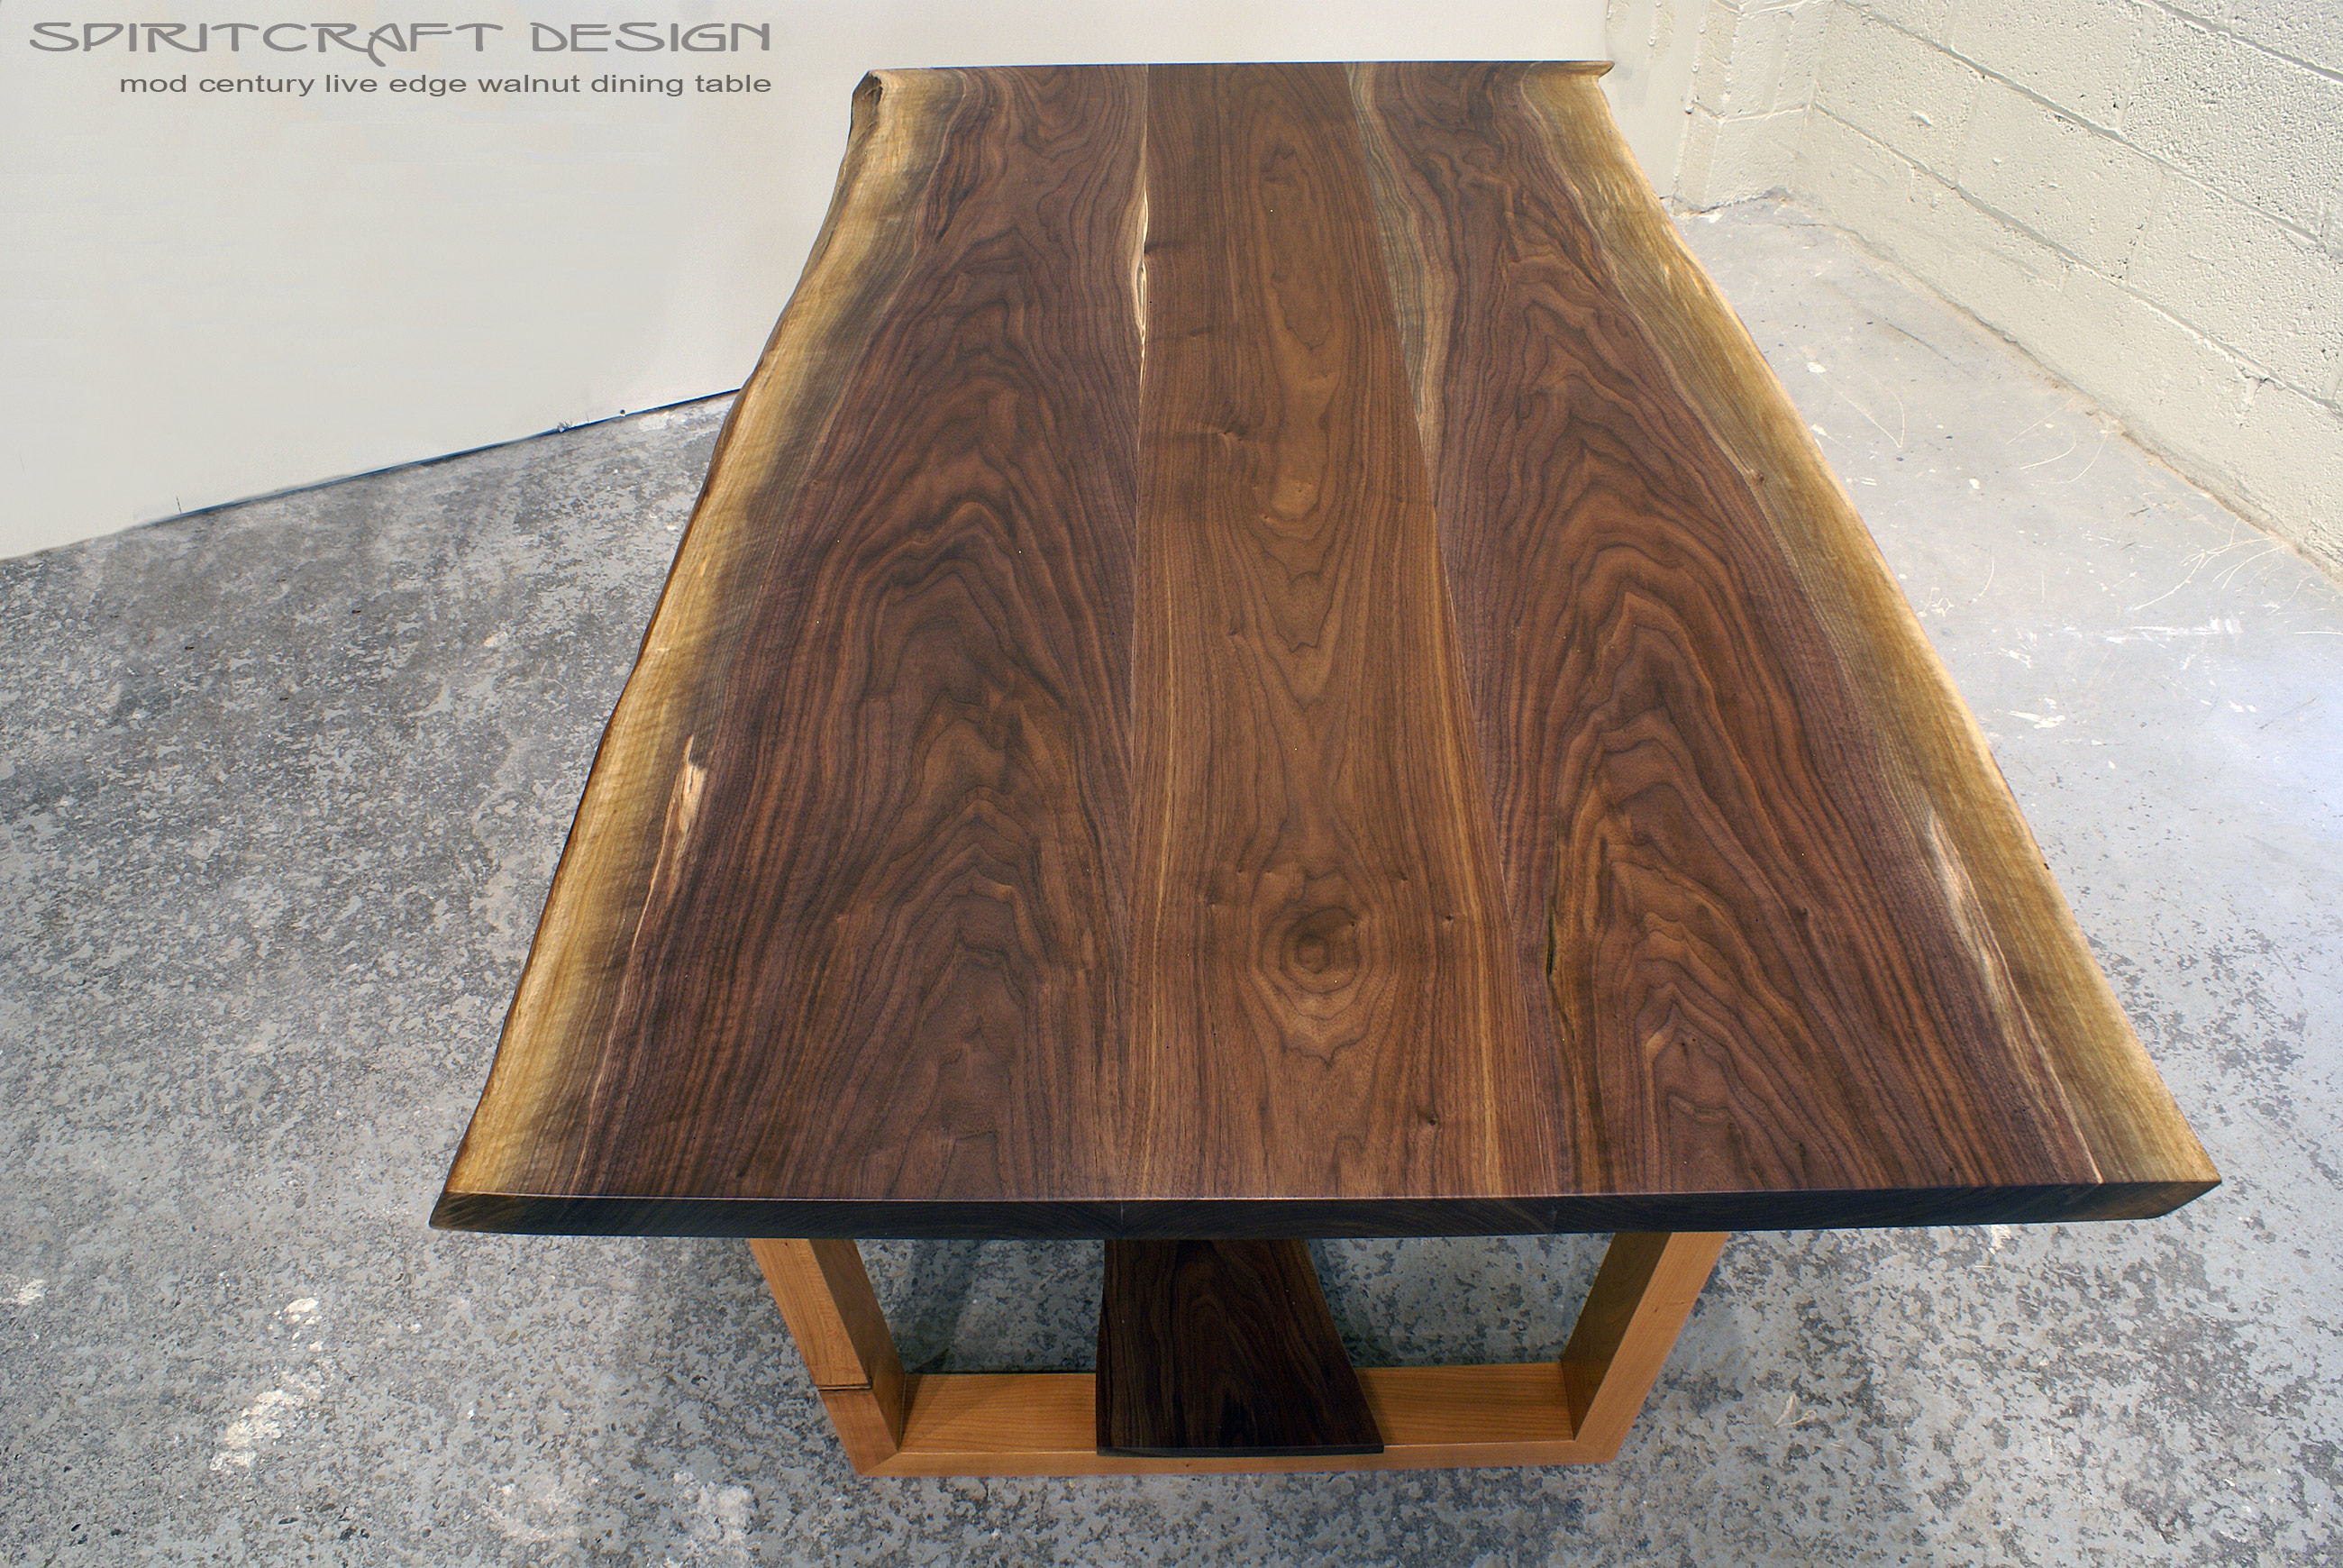 Live Edge Walnut Dining Table In Our Original Mid Century Leg Design Features Book